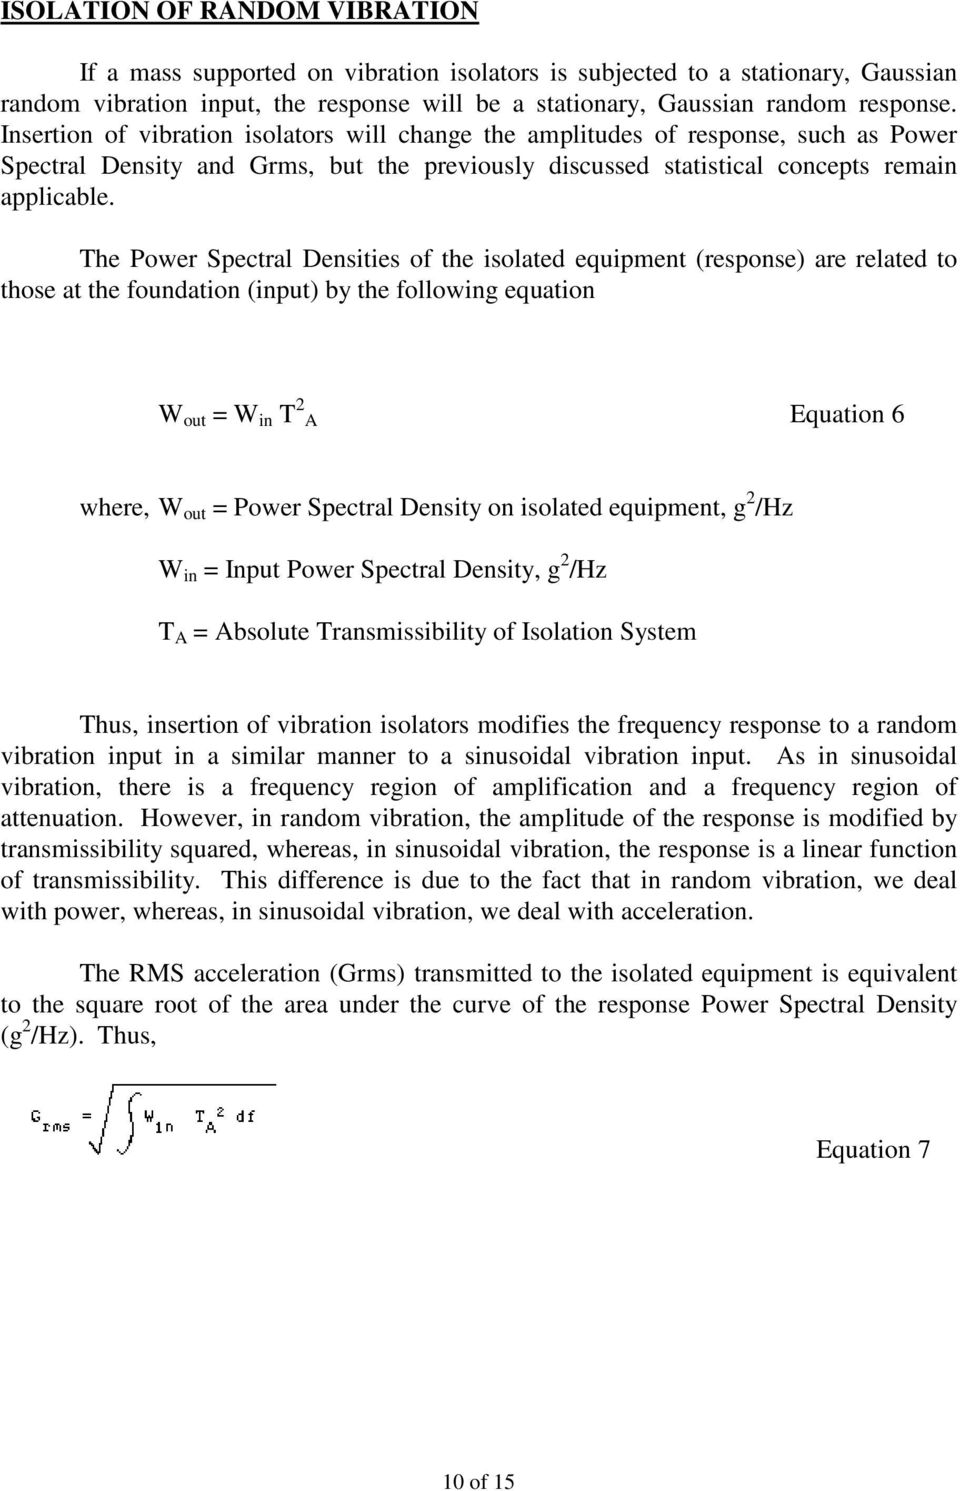 The Power Spectral Densities of the isolated equipment (response) are related to those at the foundation (input) by the following equation W out = W in T 2 A Equation 6 where, W out = Power Spectral